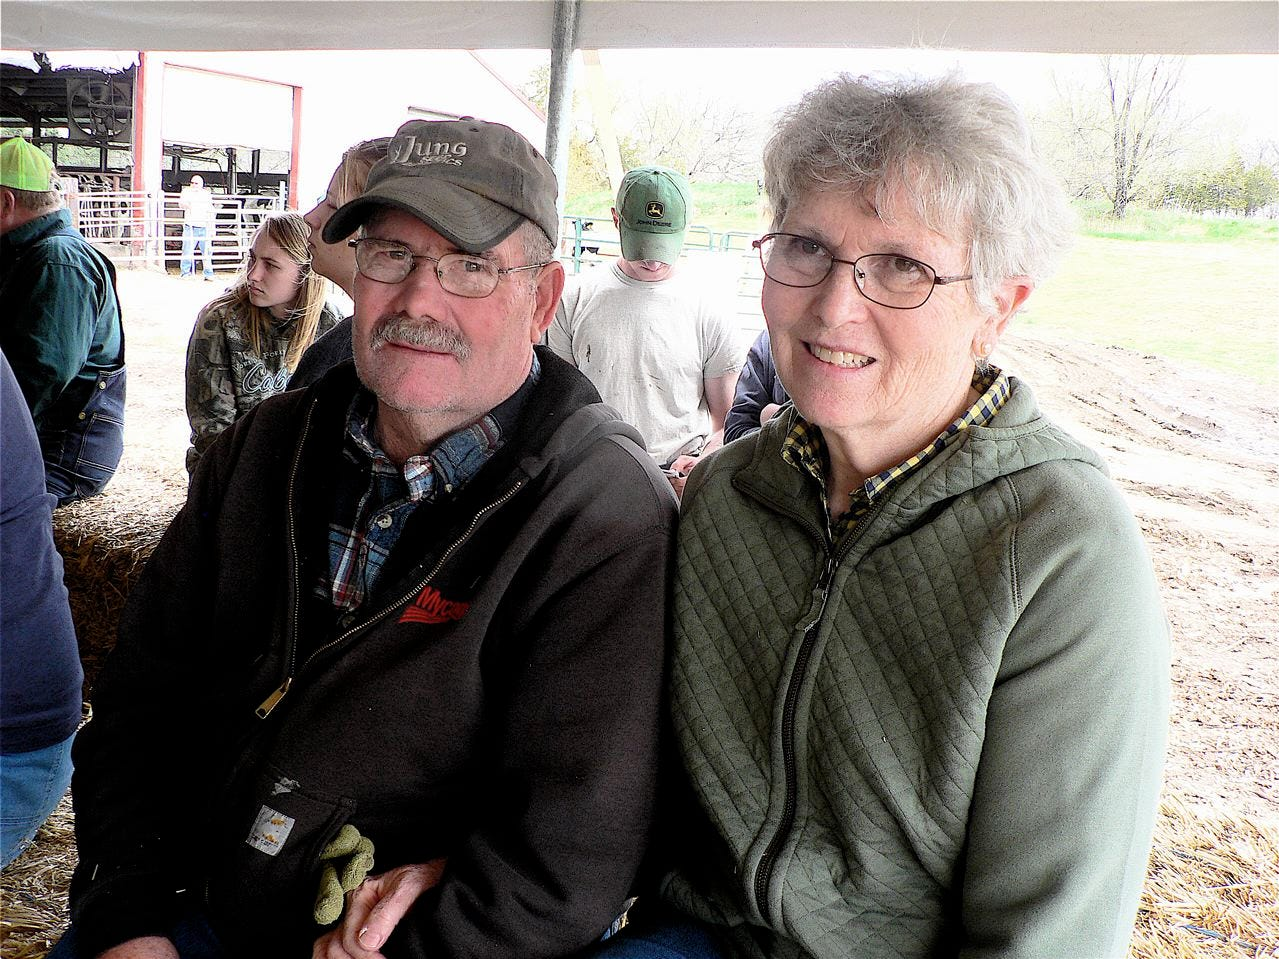 Tom and Mary Heinze watch the cattle go, selling the cows to Mark and Beth in 2012.